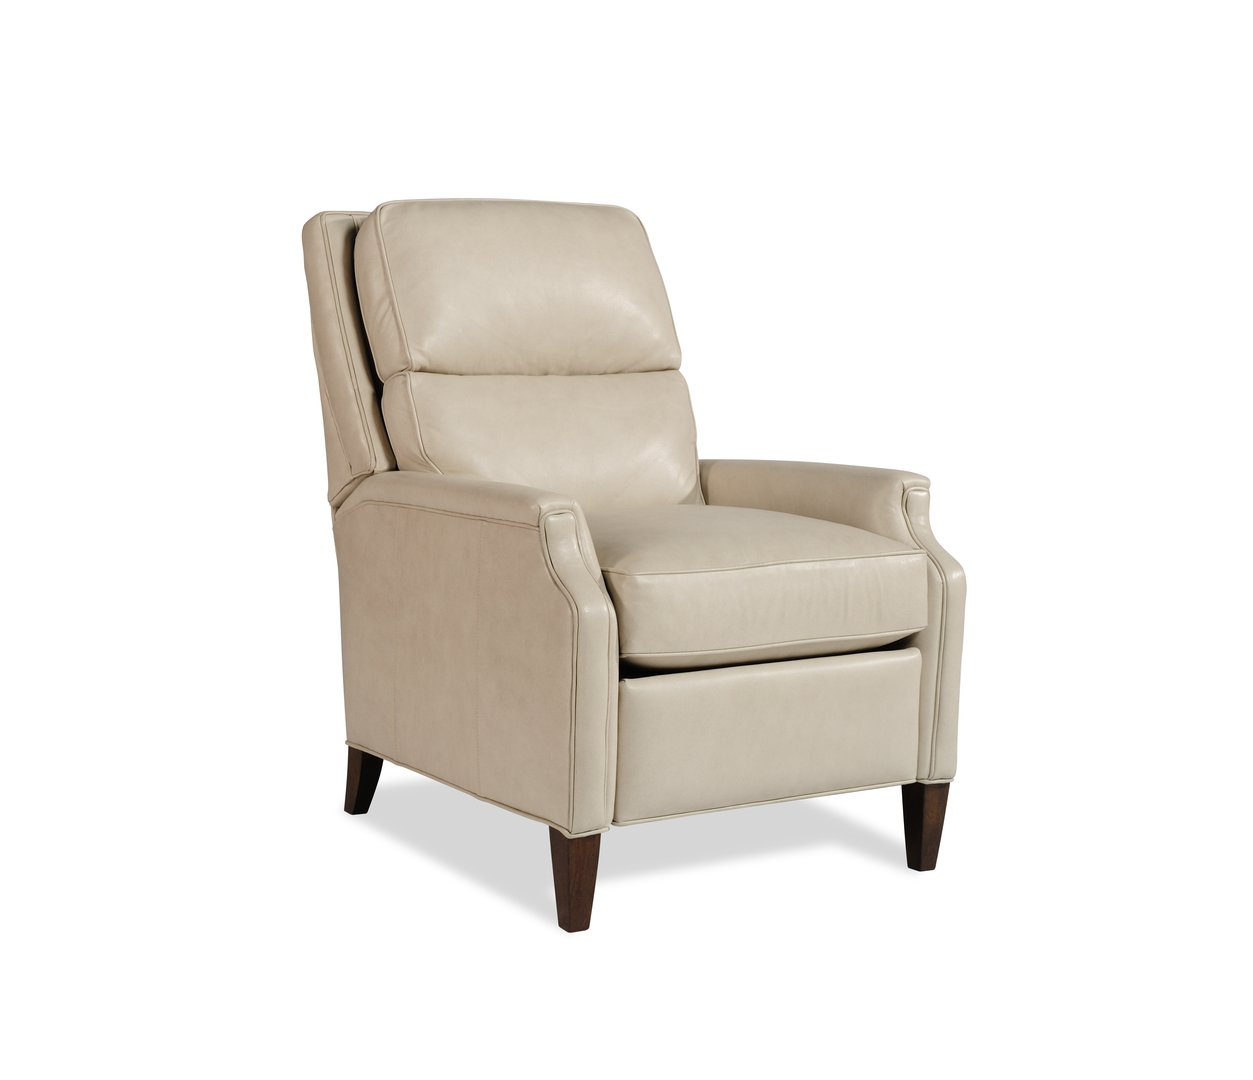 Gosford Reclining Chair Image